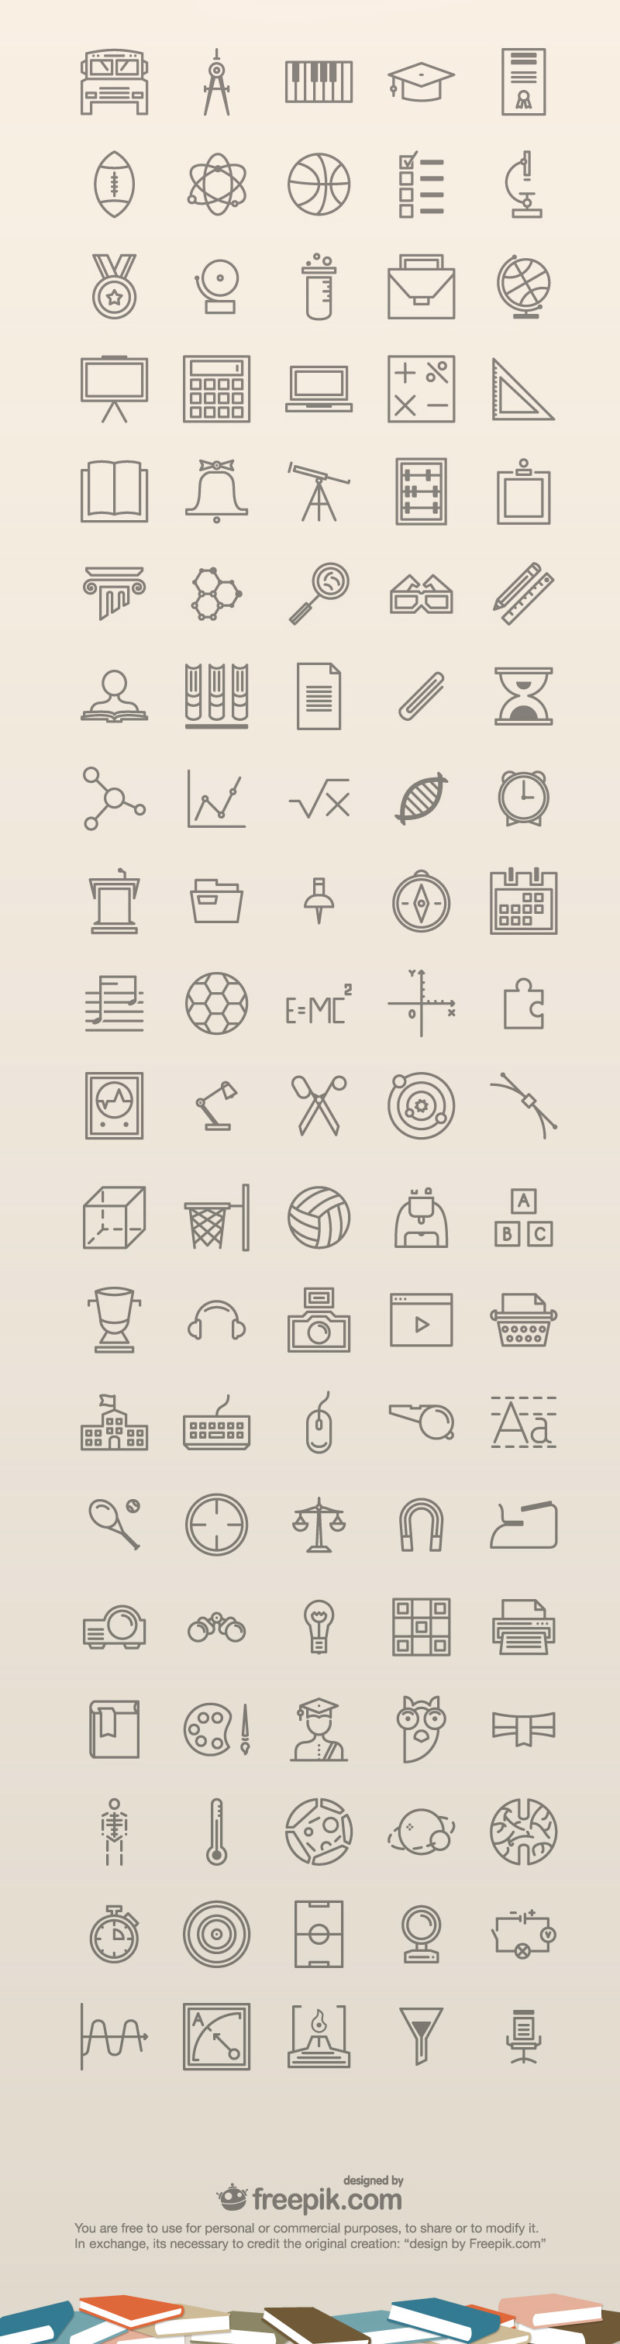 35-100-free-education-icons